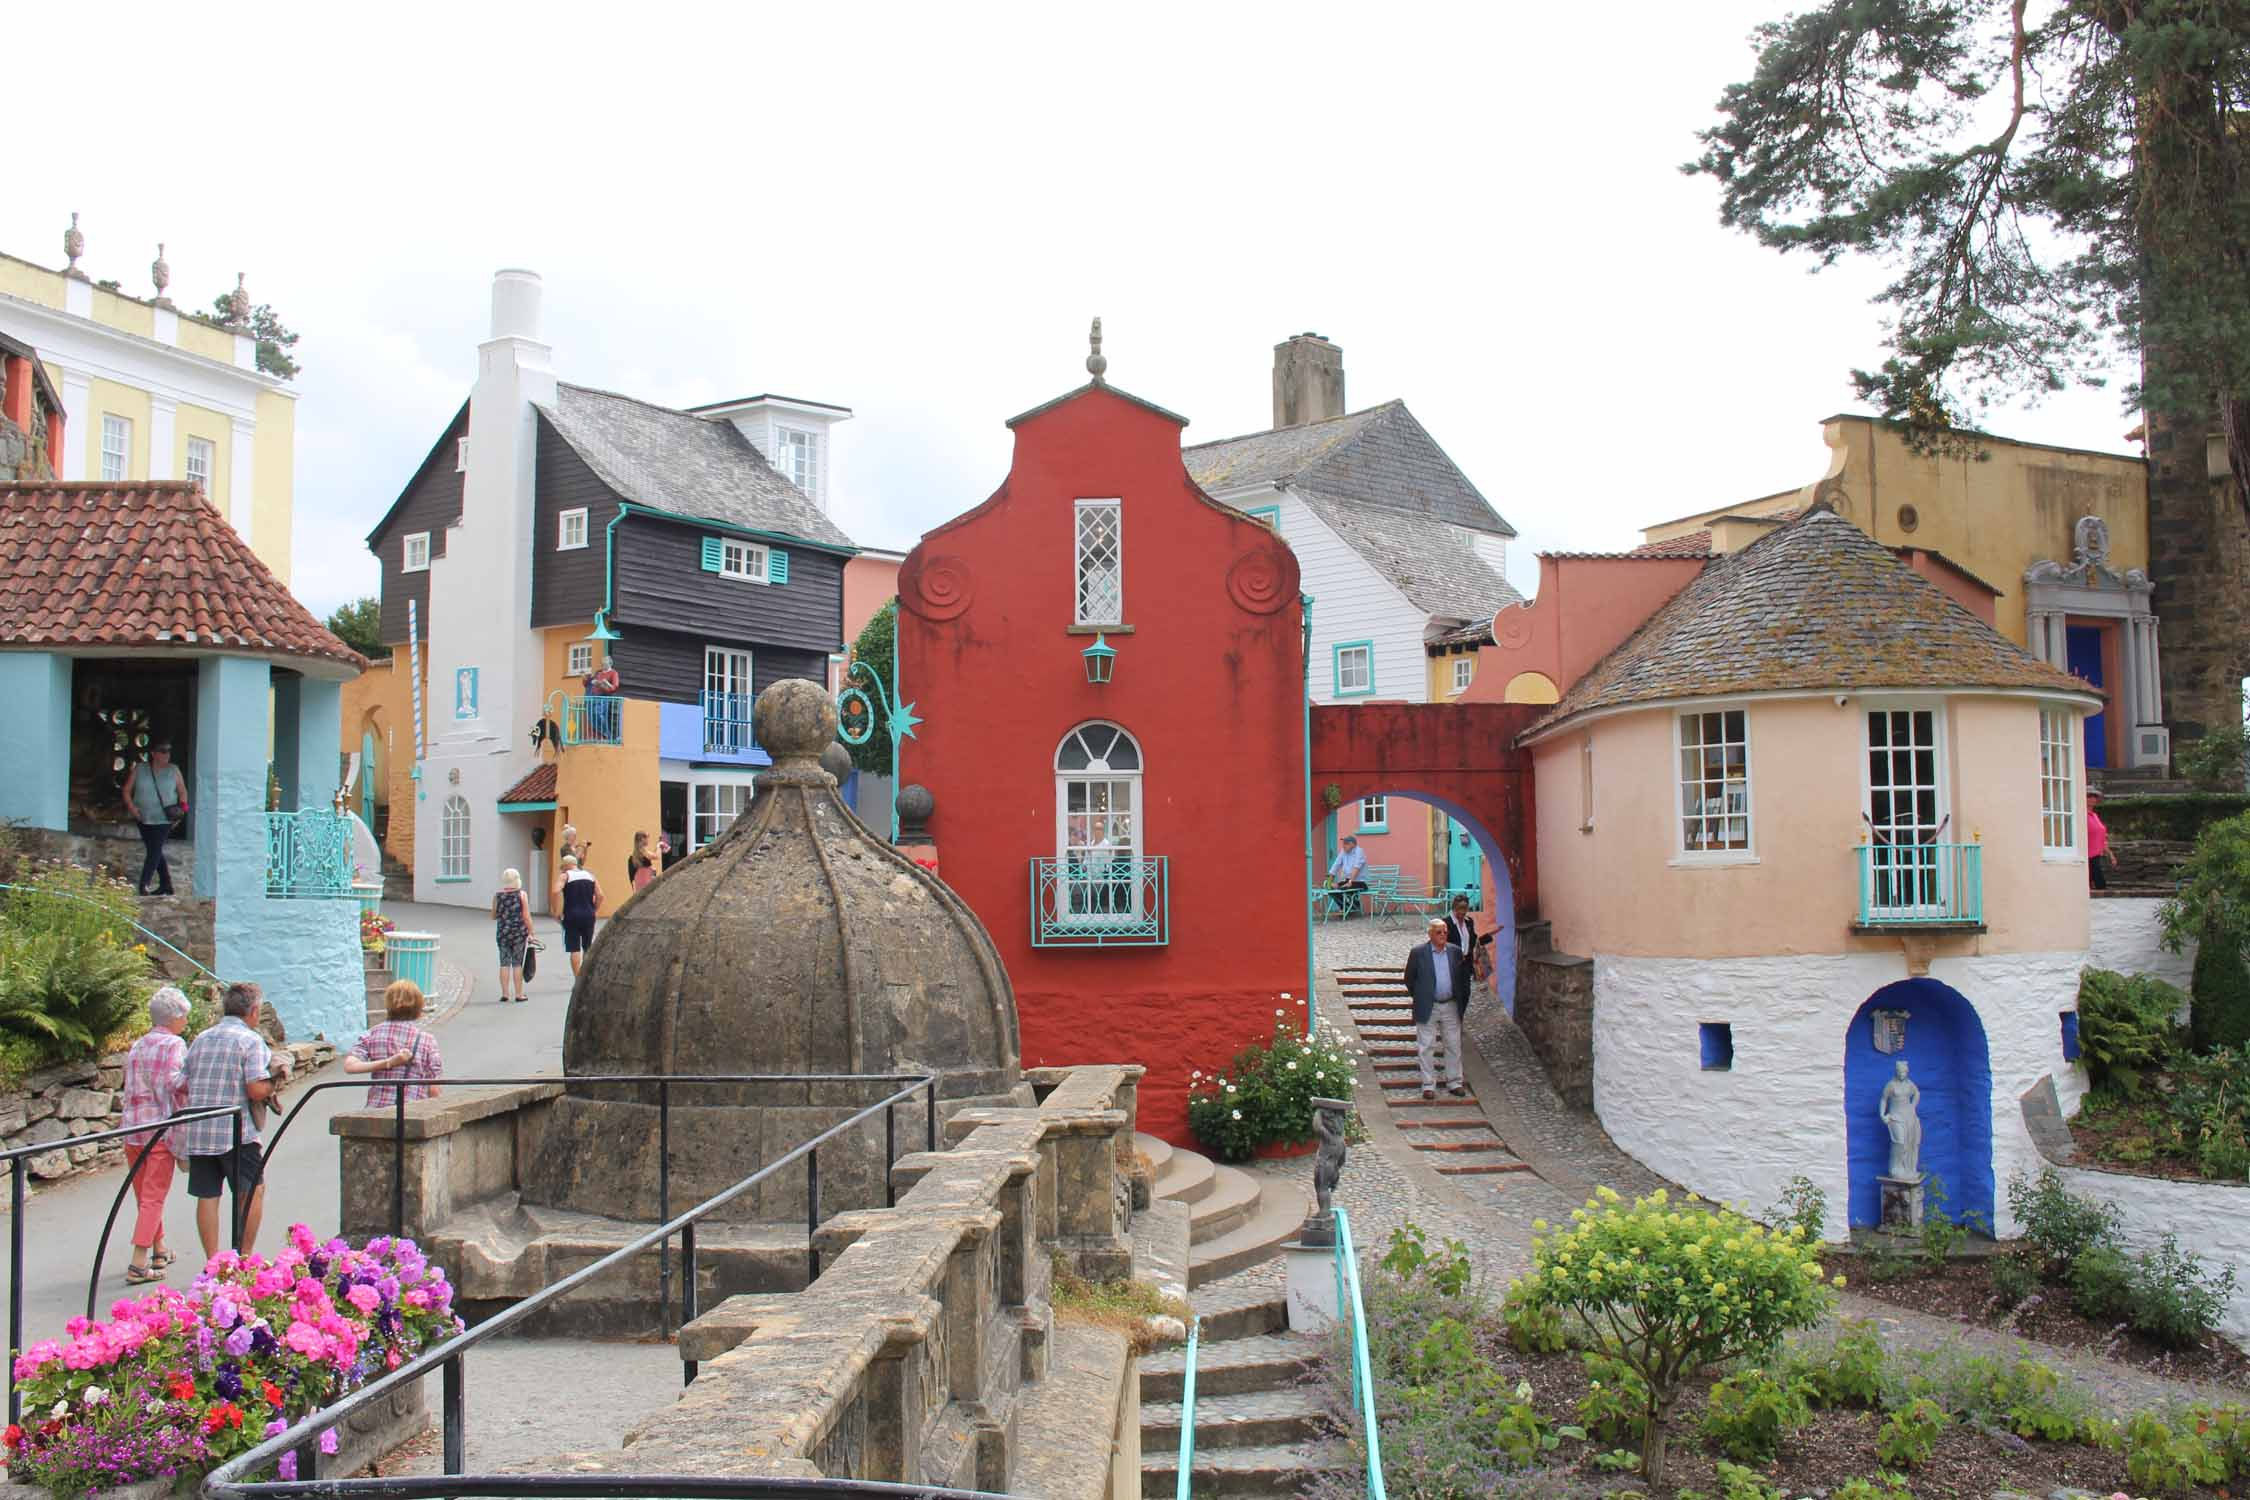 Gales, Portmeirion, casas coloreadas